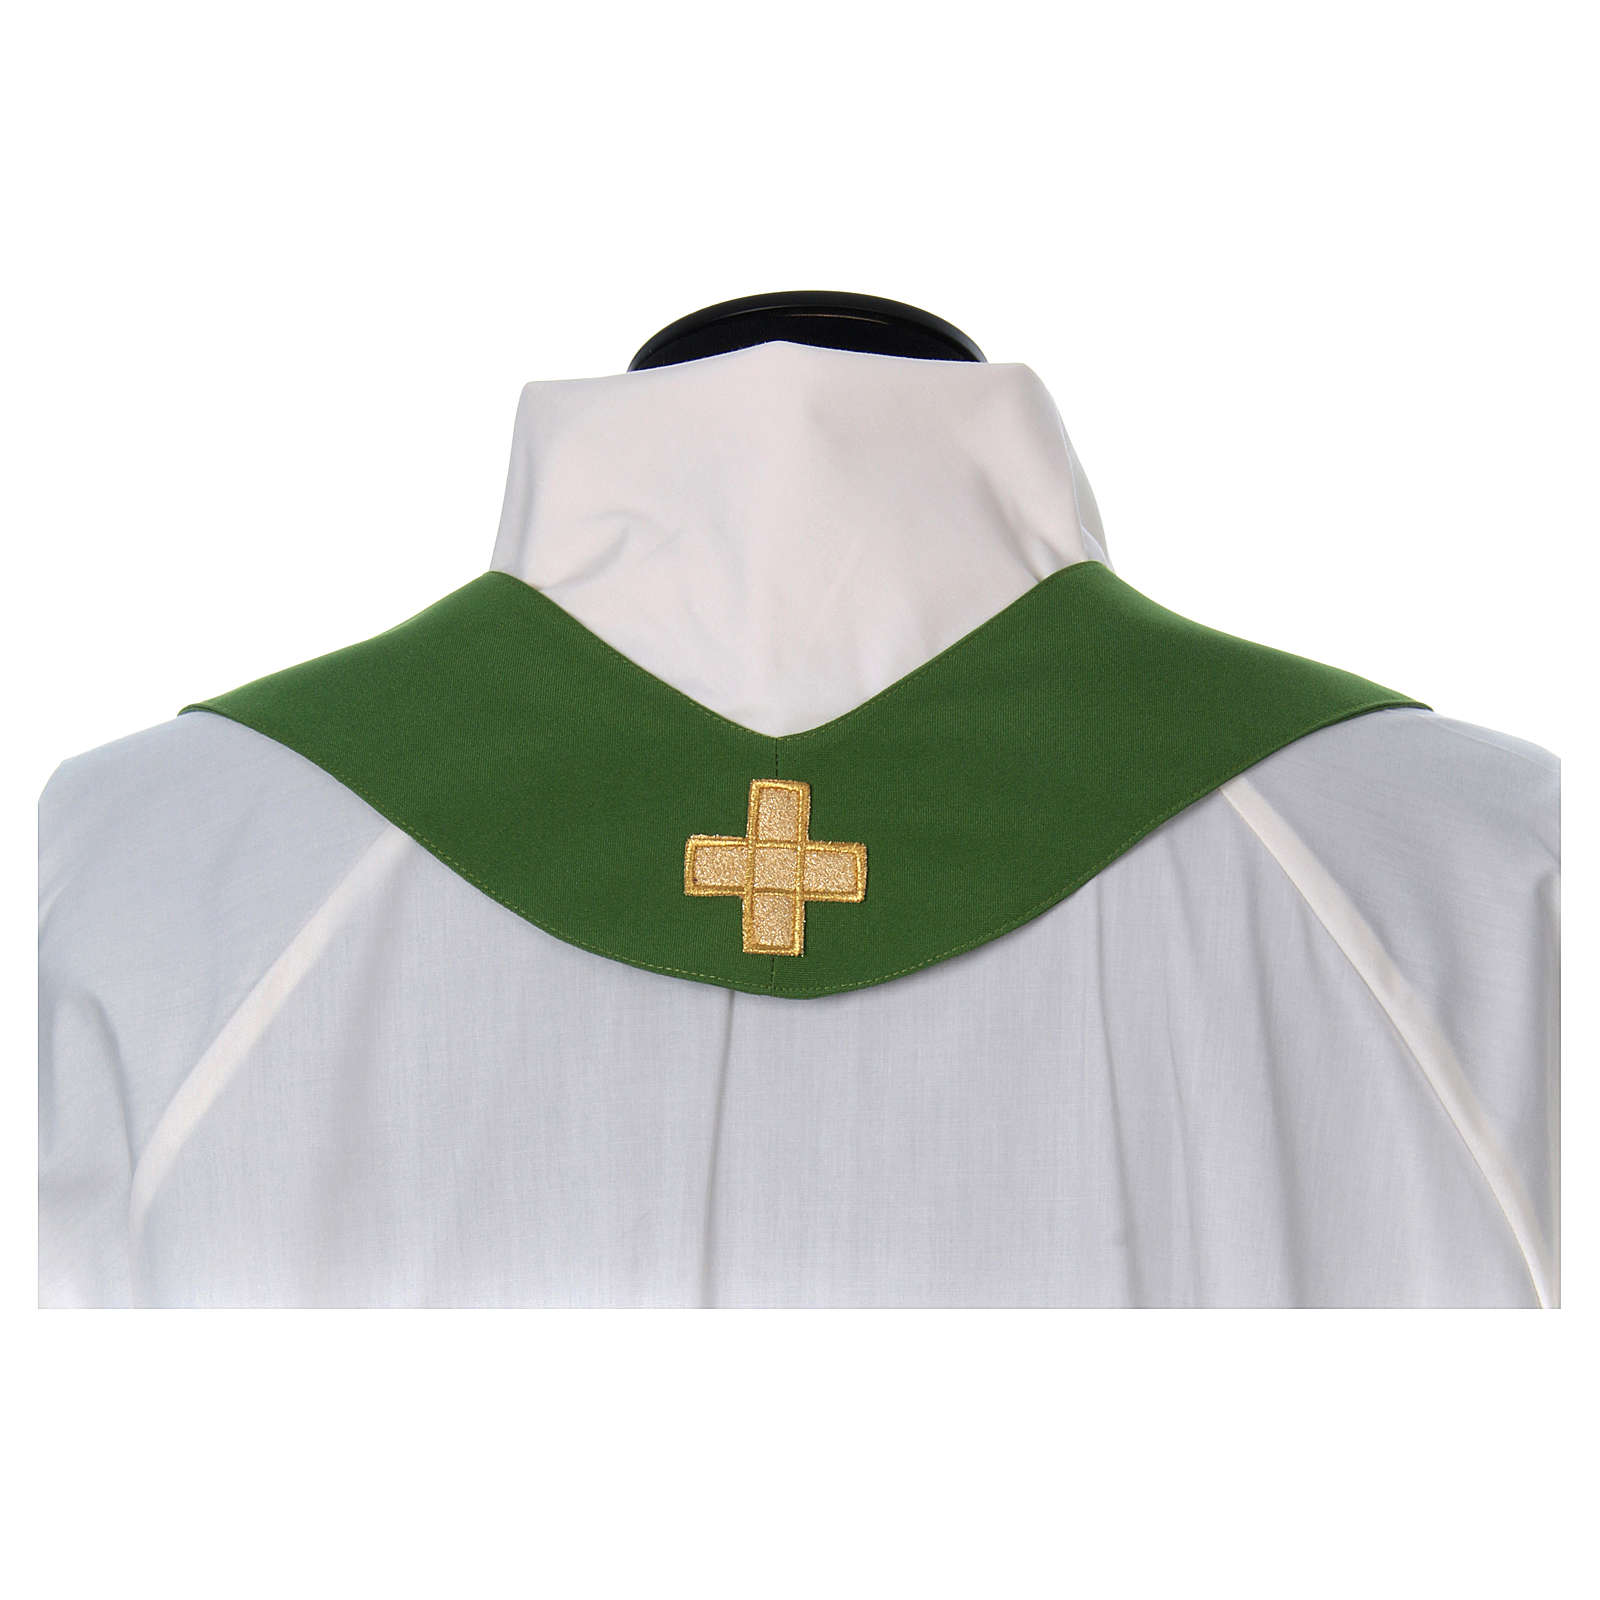 Monastic Chasuble with cross in 4 colors 4